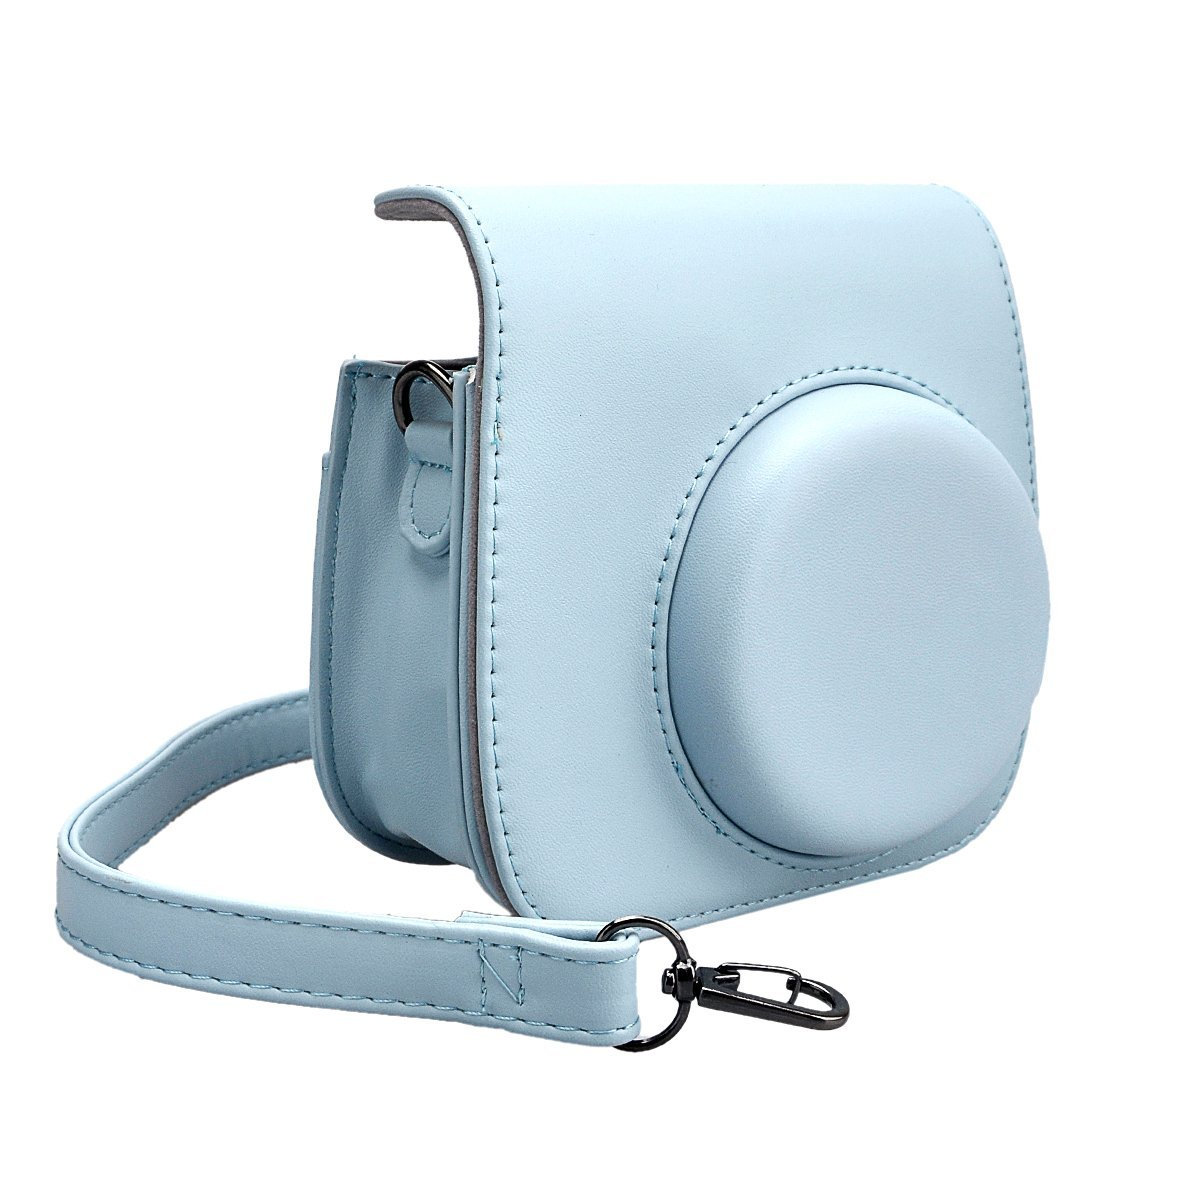 SKmoon PU Leather Instax Camera Accessories Compact Case Vintage Shoulder Bag with Pocket for Fujifilm Instax Mini 8 Instant Film Camera (Blue)